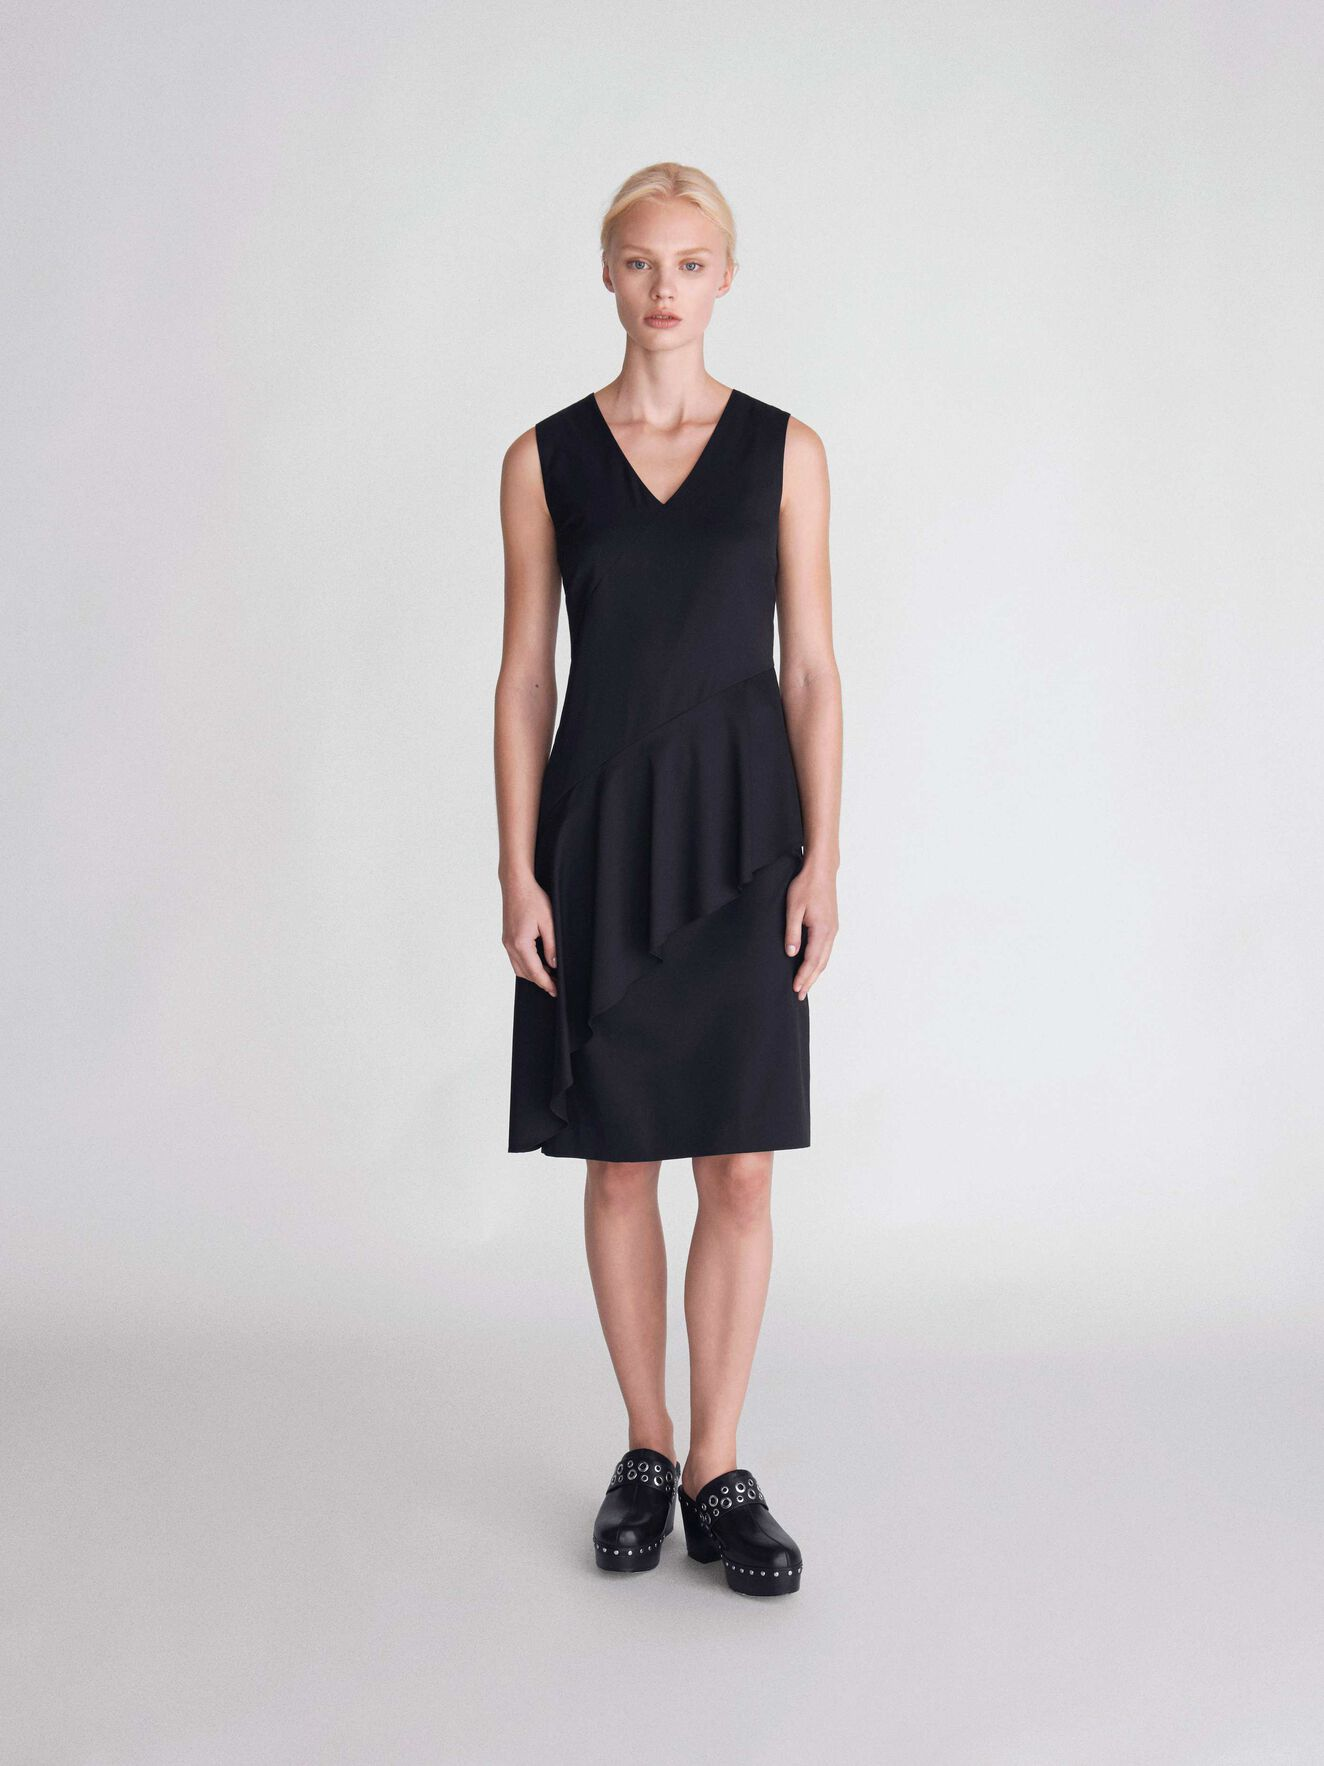 Azumi Dress in Black from Tiger of Sweden